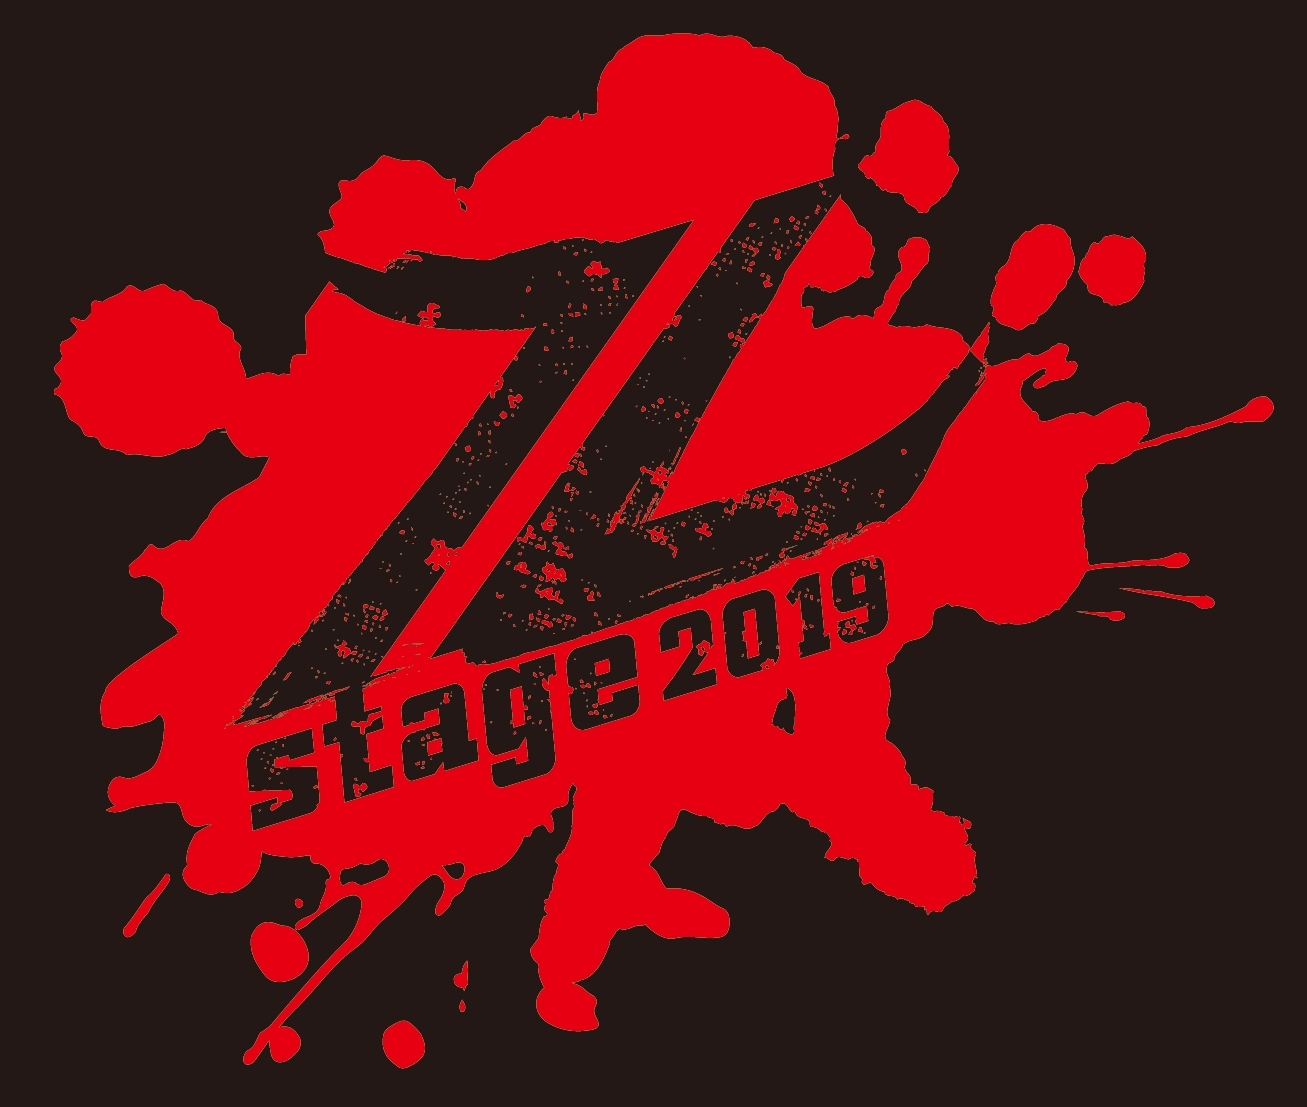 Zstage